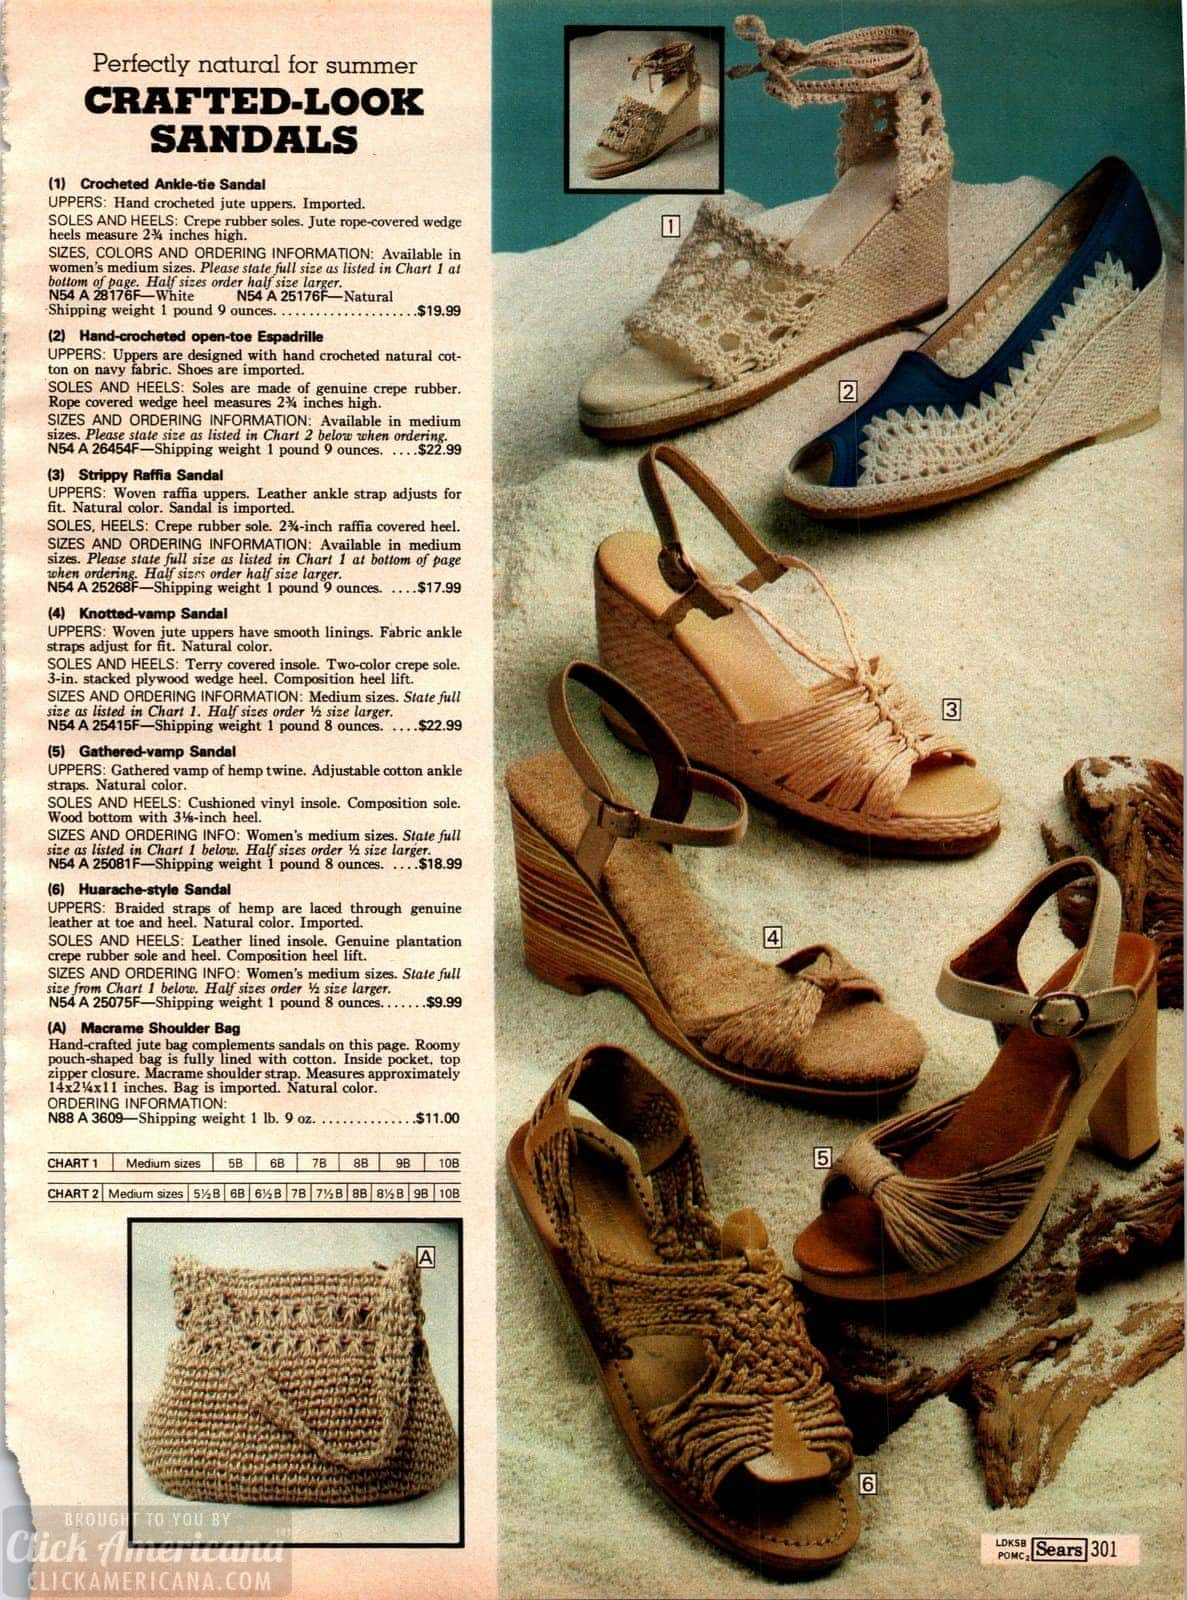 Retro crafted-look sandals - crochet-look, macrame-style and hemp heels from 1979